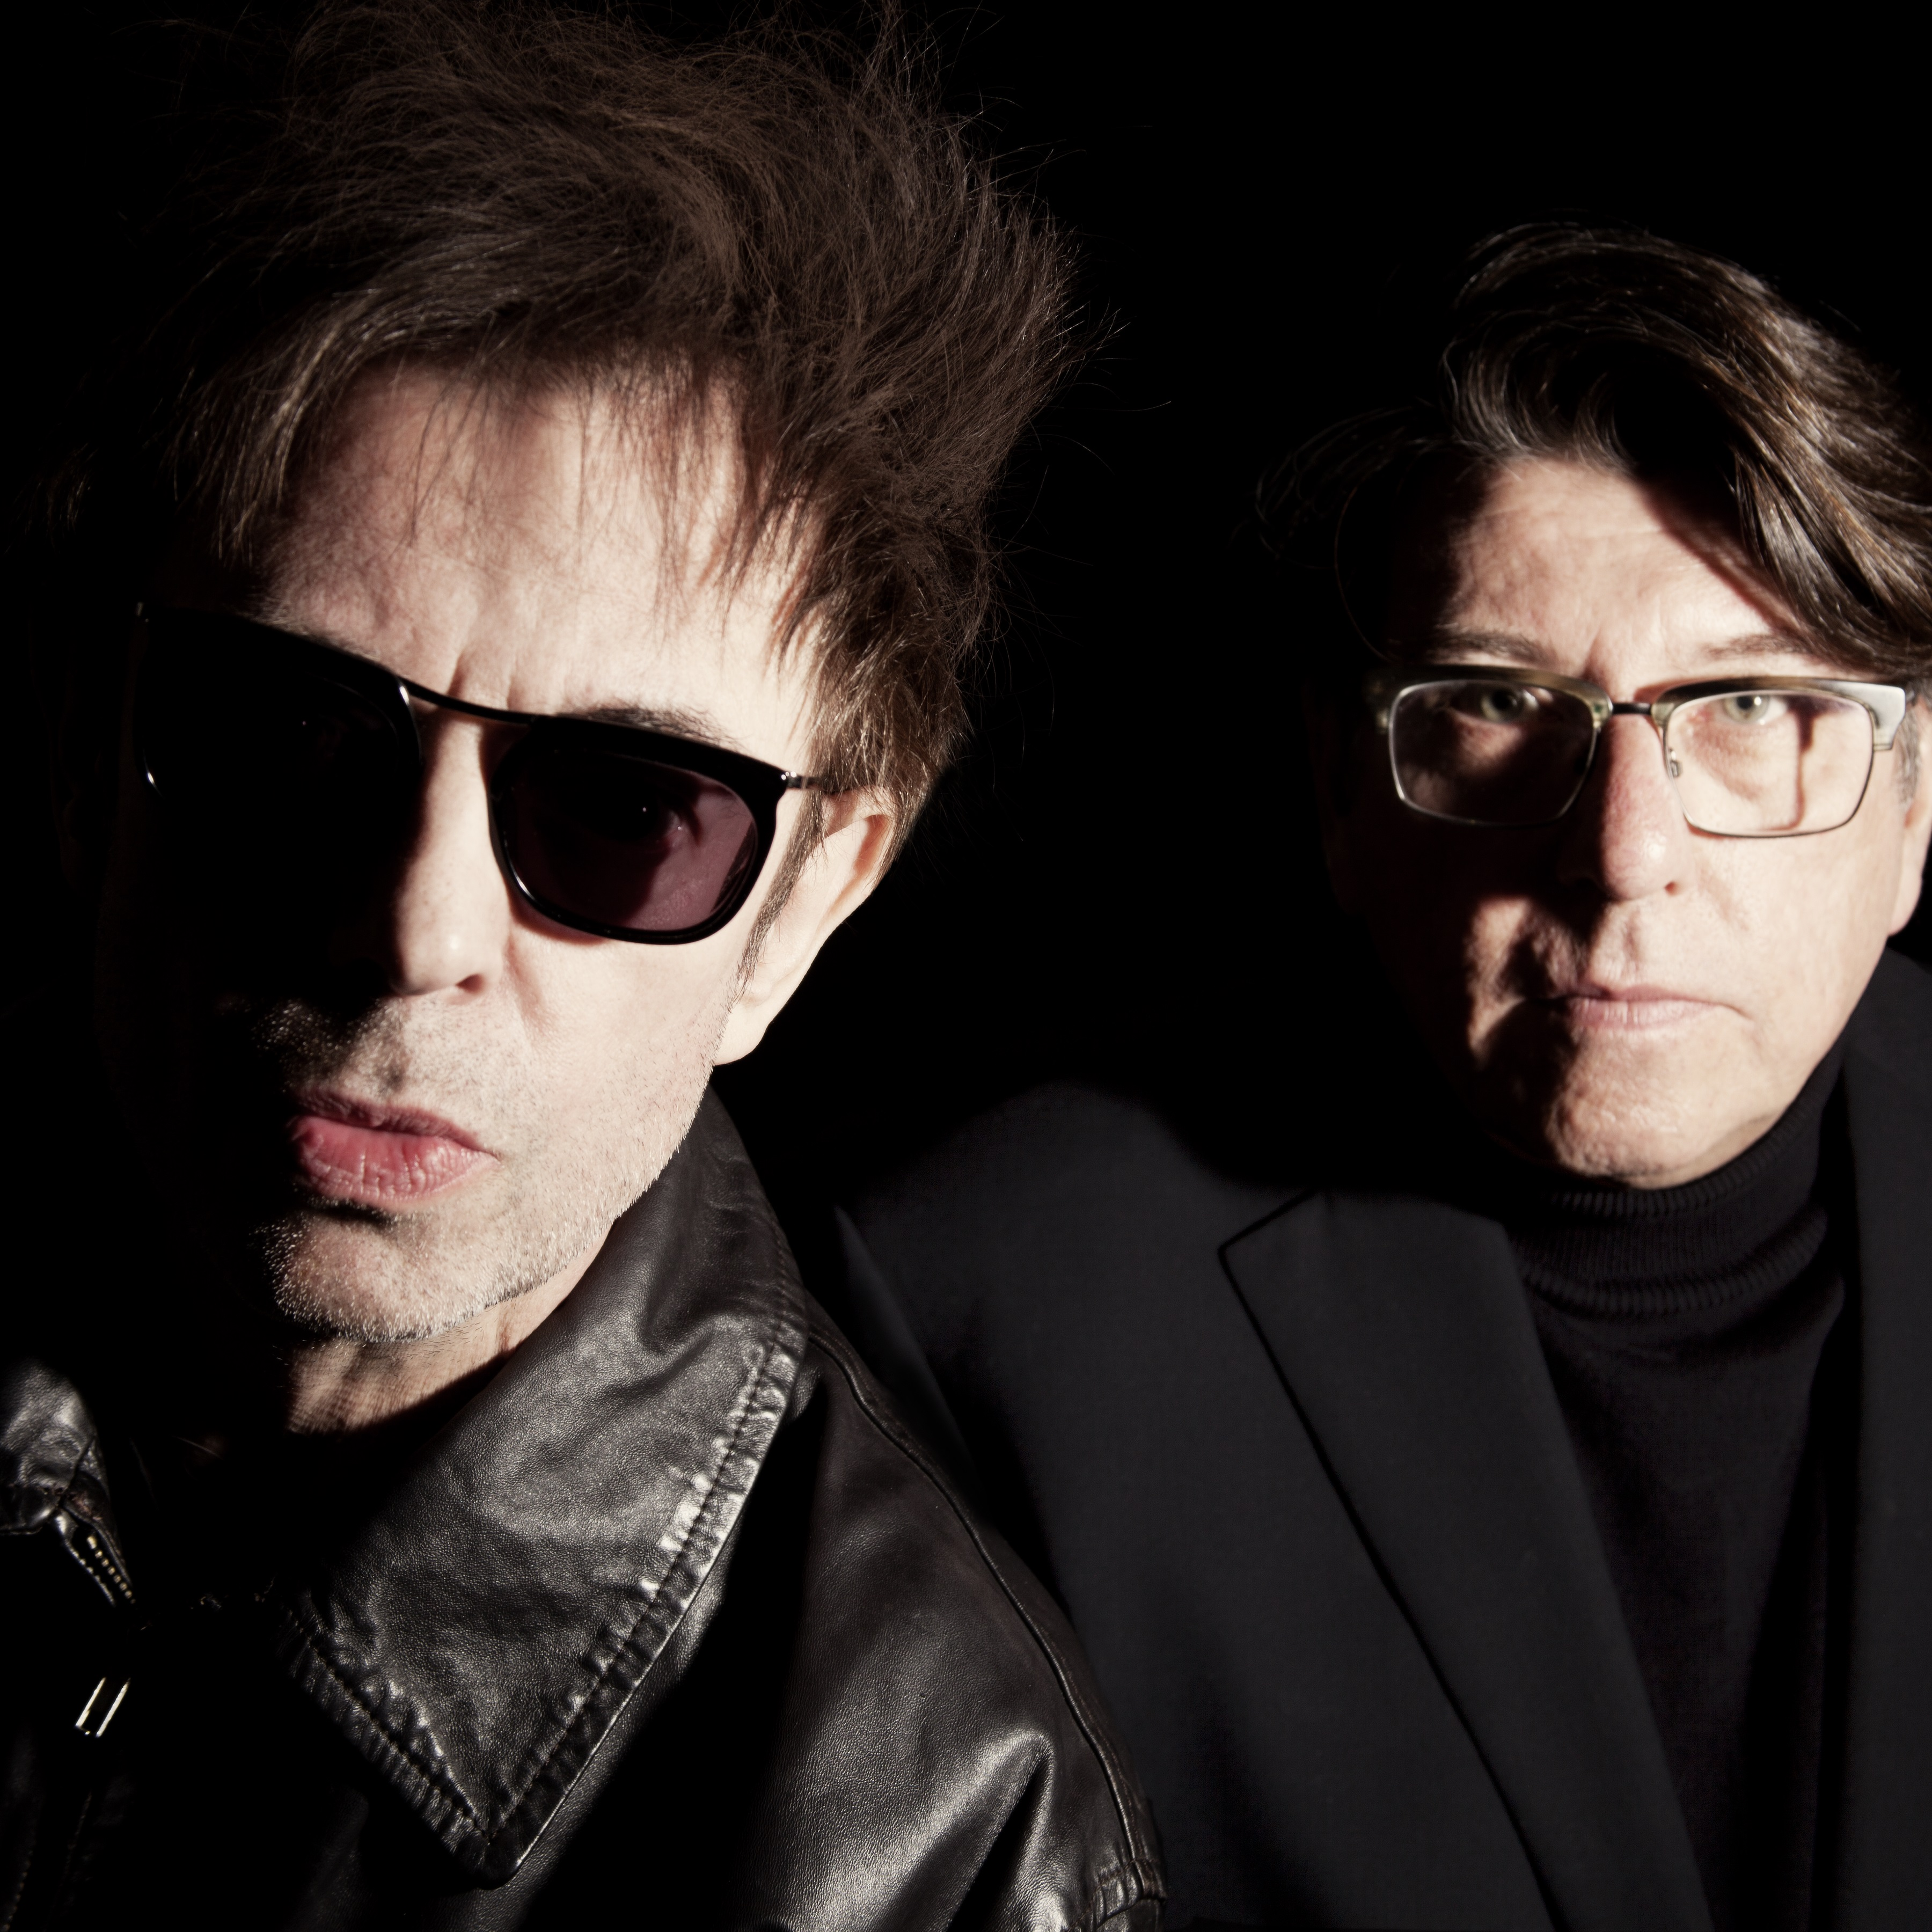 RE: Echo & The Bunnymen Oct 2018 - announcement and on sale